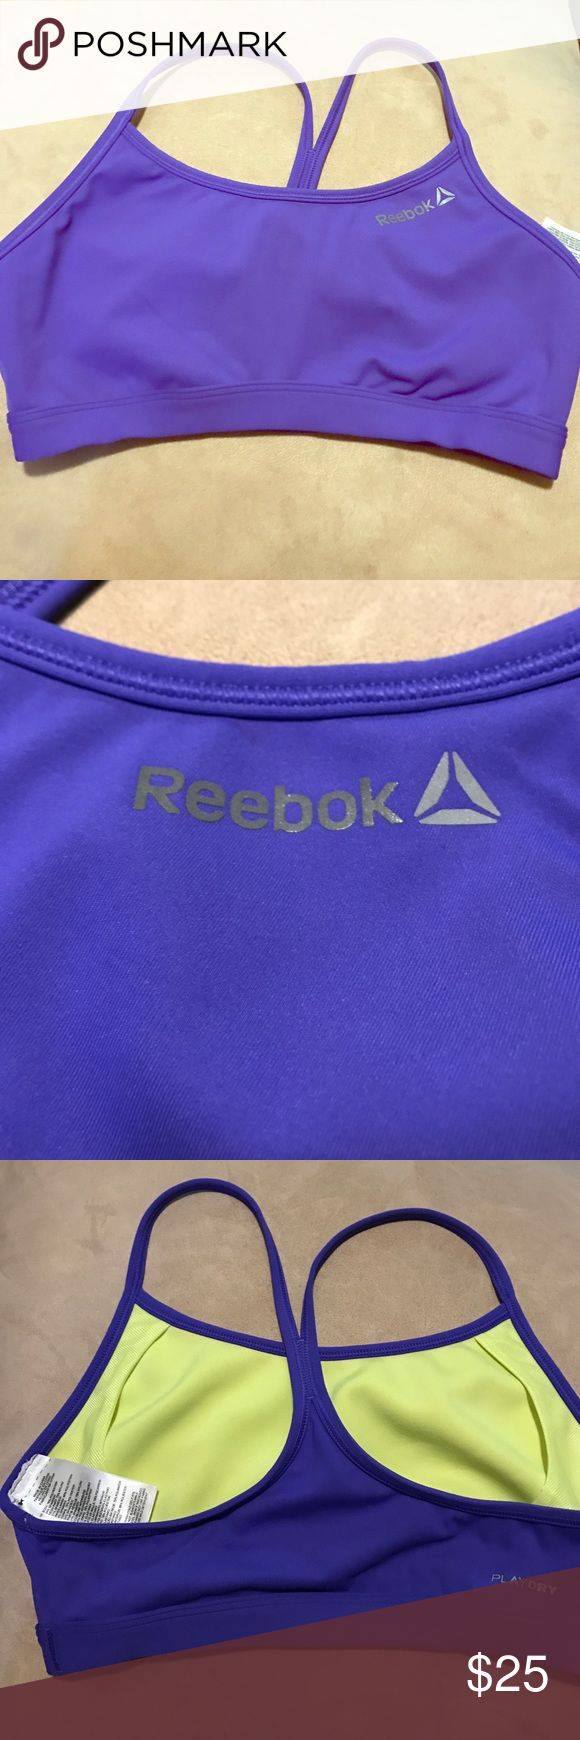 Reebok crossfit sport bra, volleyball or swim top Reebok play dry material bright purply cobalt blue racerback bra top - great for swim, triathlon, volleyball, crossfit or gym with quick drying yellow mesh liner.  Ordered online and was not the right size.  True reebok size small. Reebok Tops Crop Tops